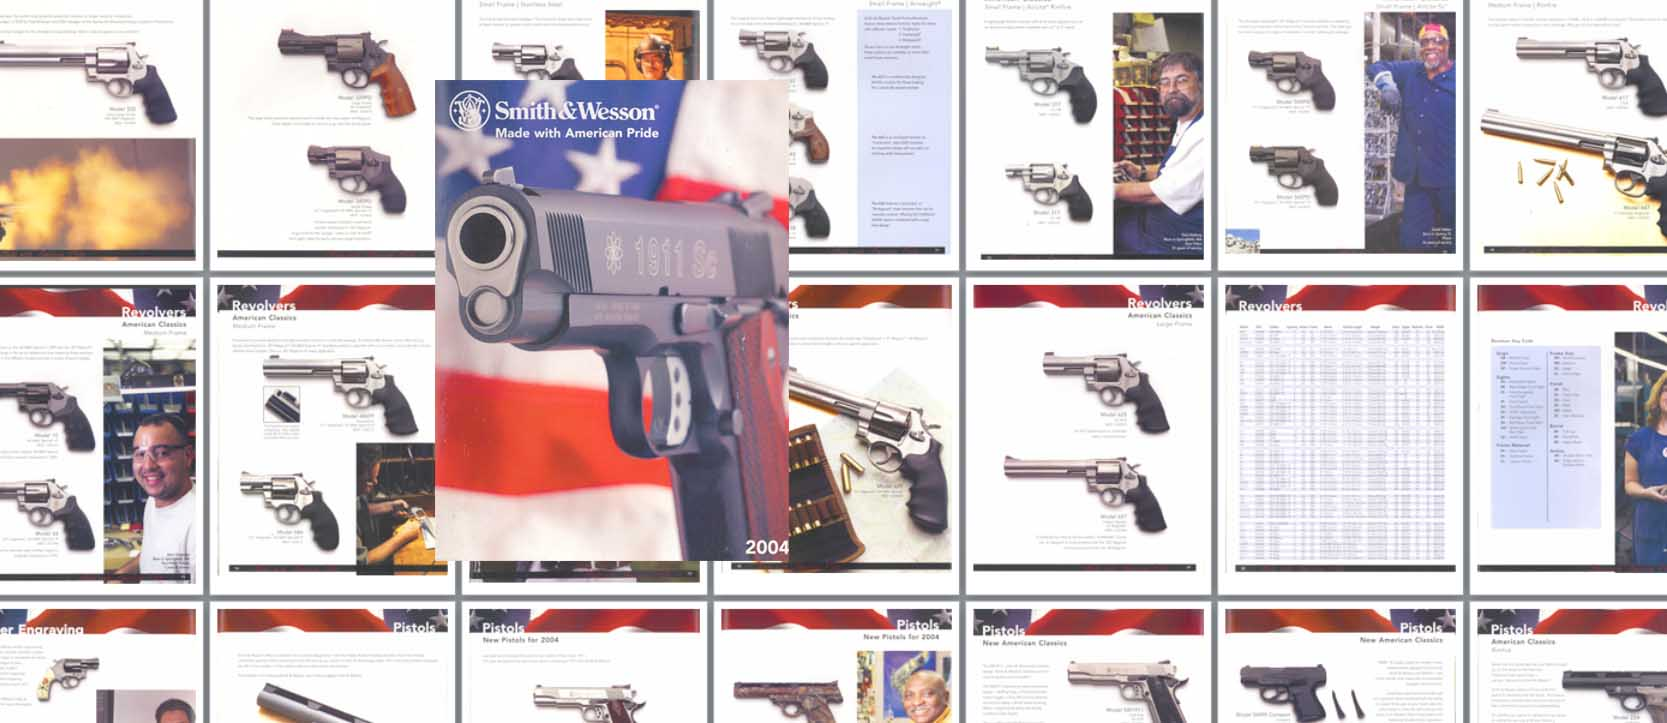 Smith & Wesson 2004 Gun Catalog